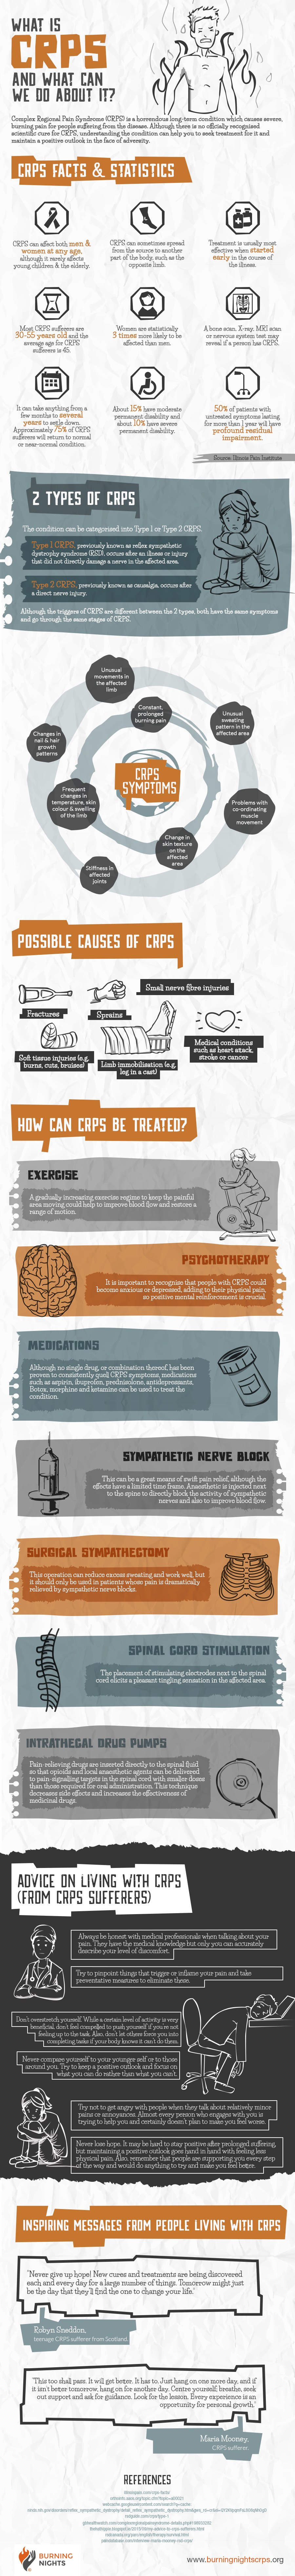 Complex Regional Pain Syndrome (CRPS) - An Infographic